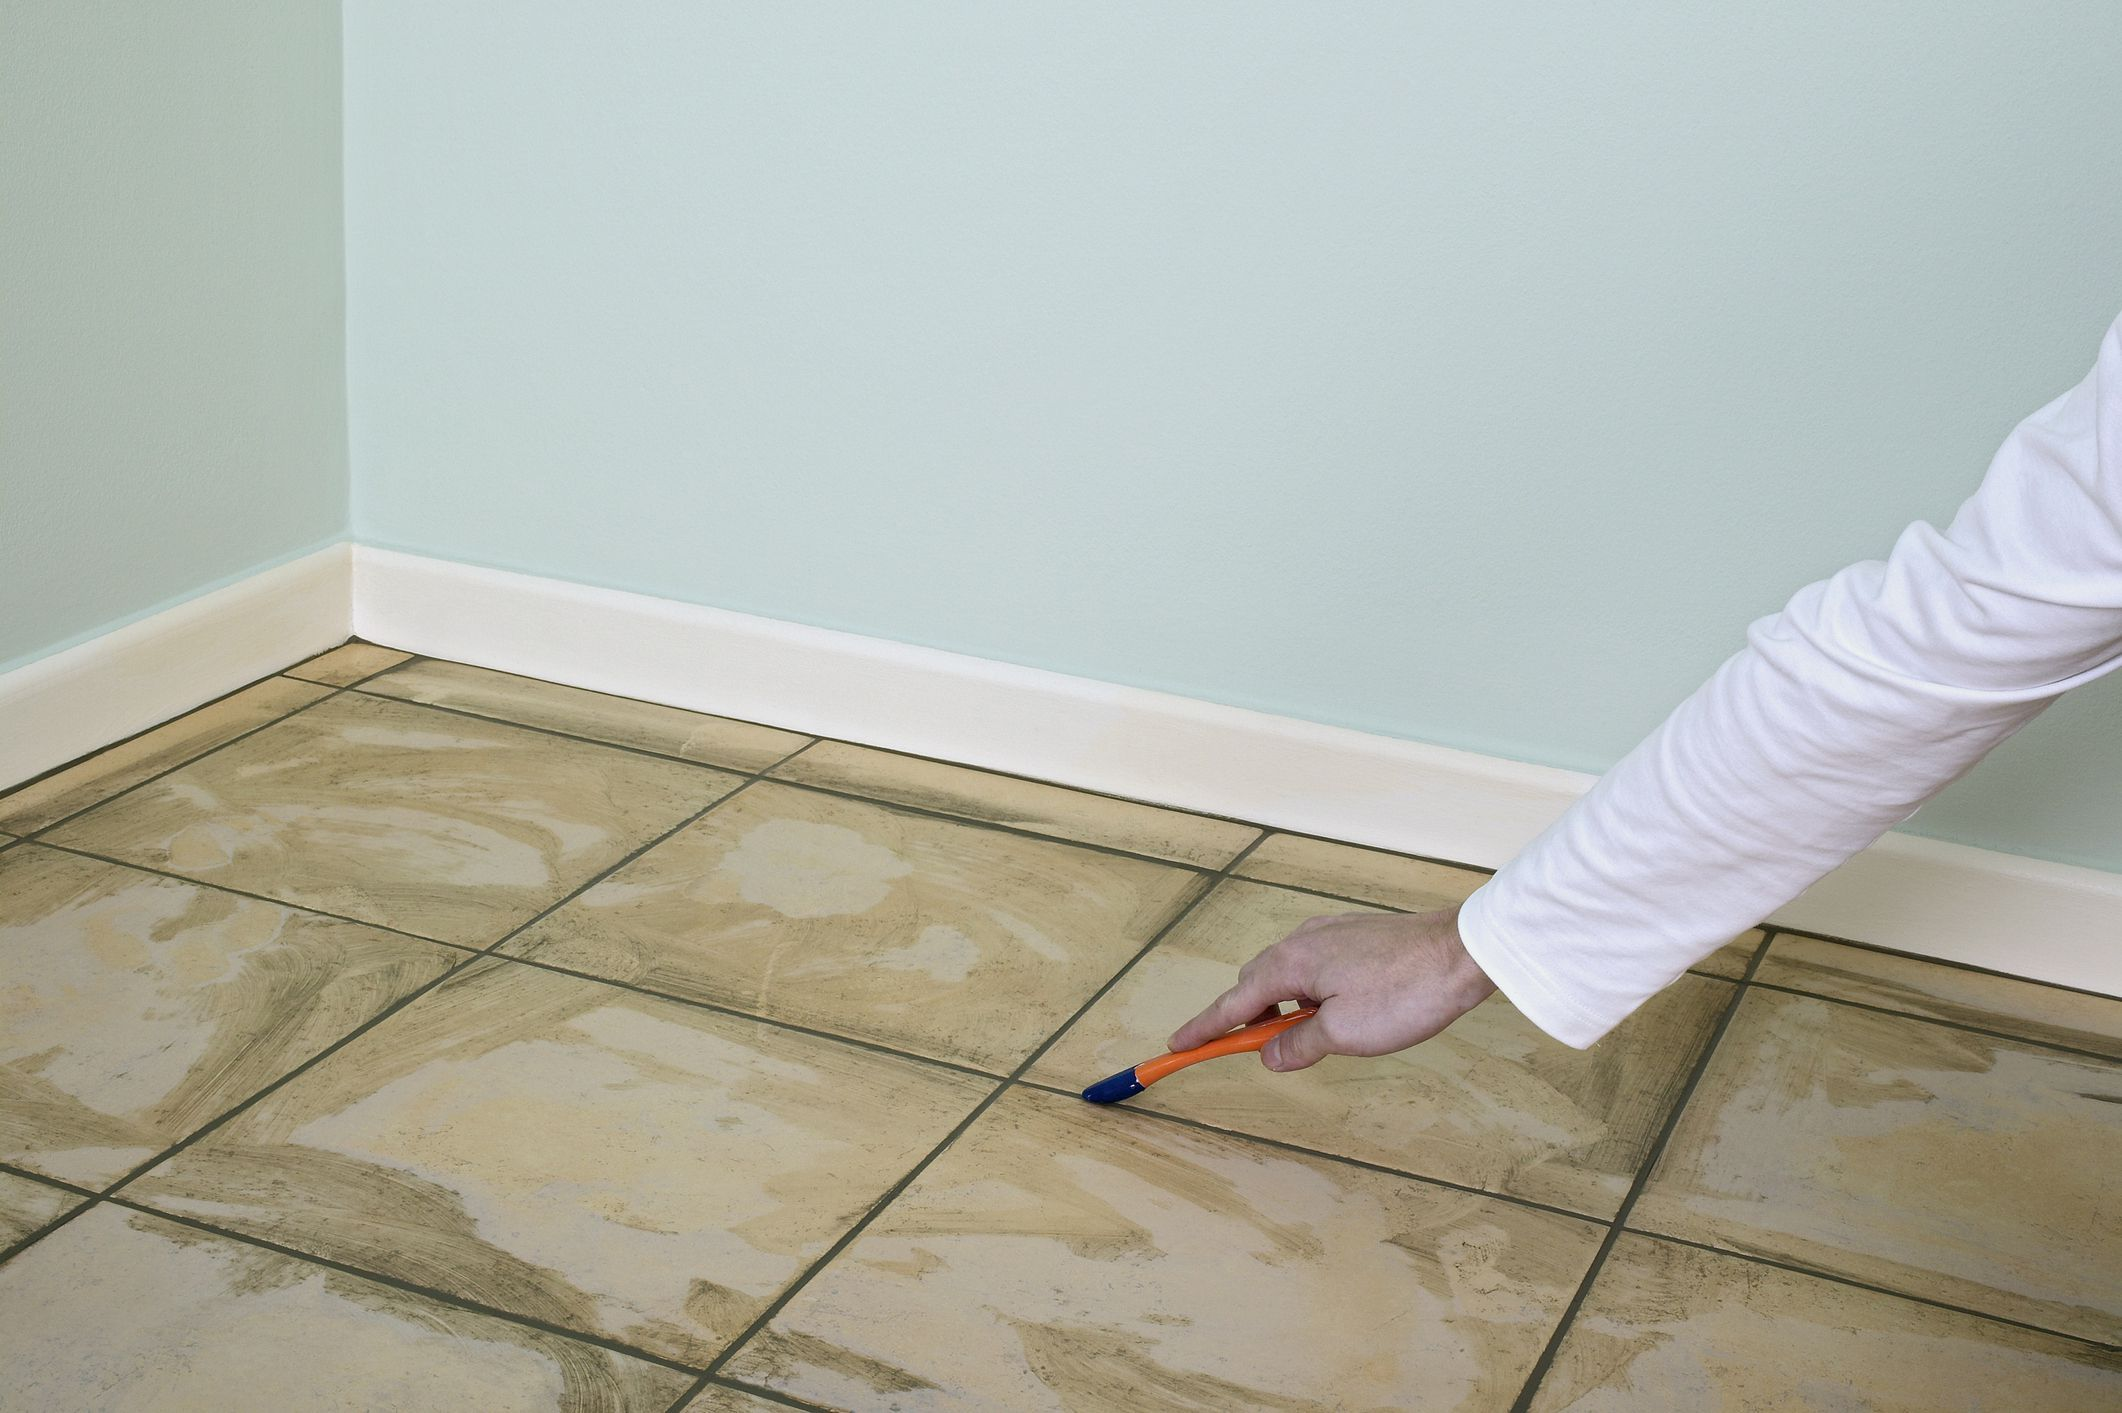 How to Change Grout Color Darker or Lighter Grout color